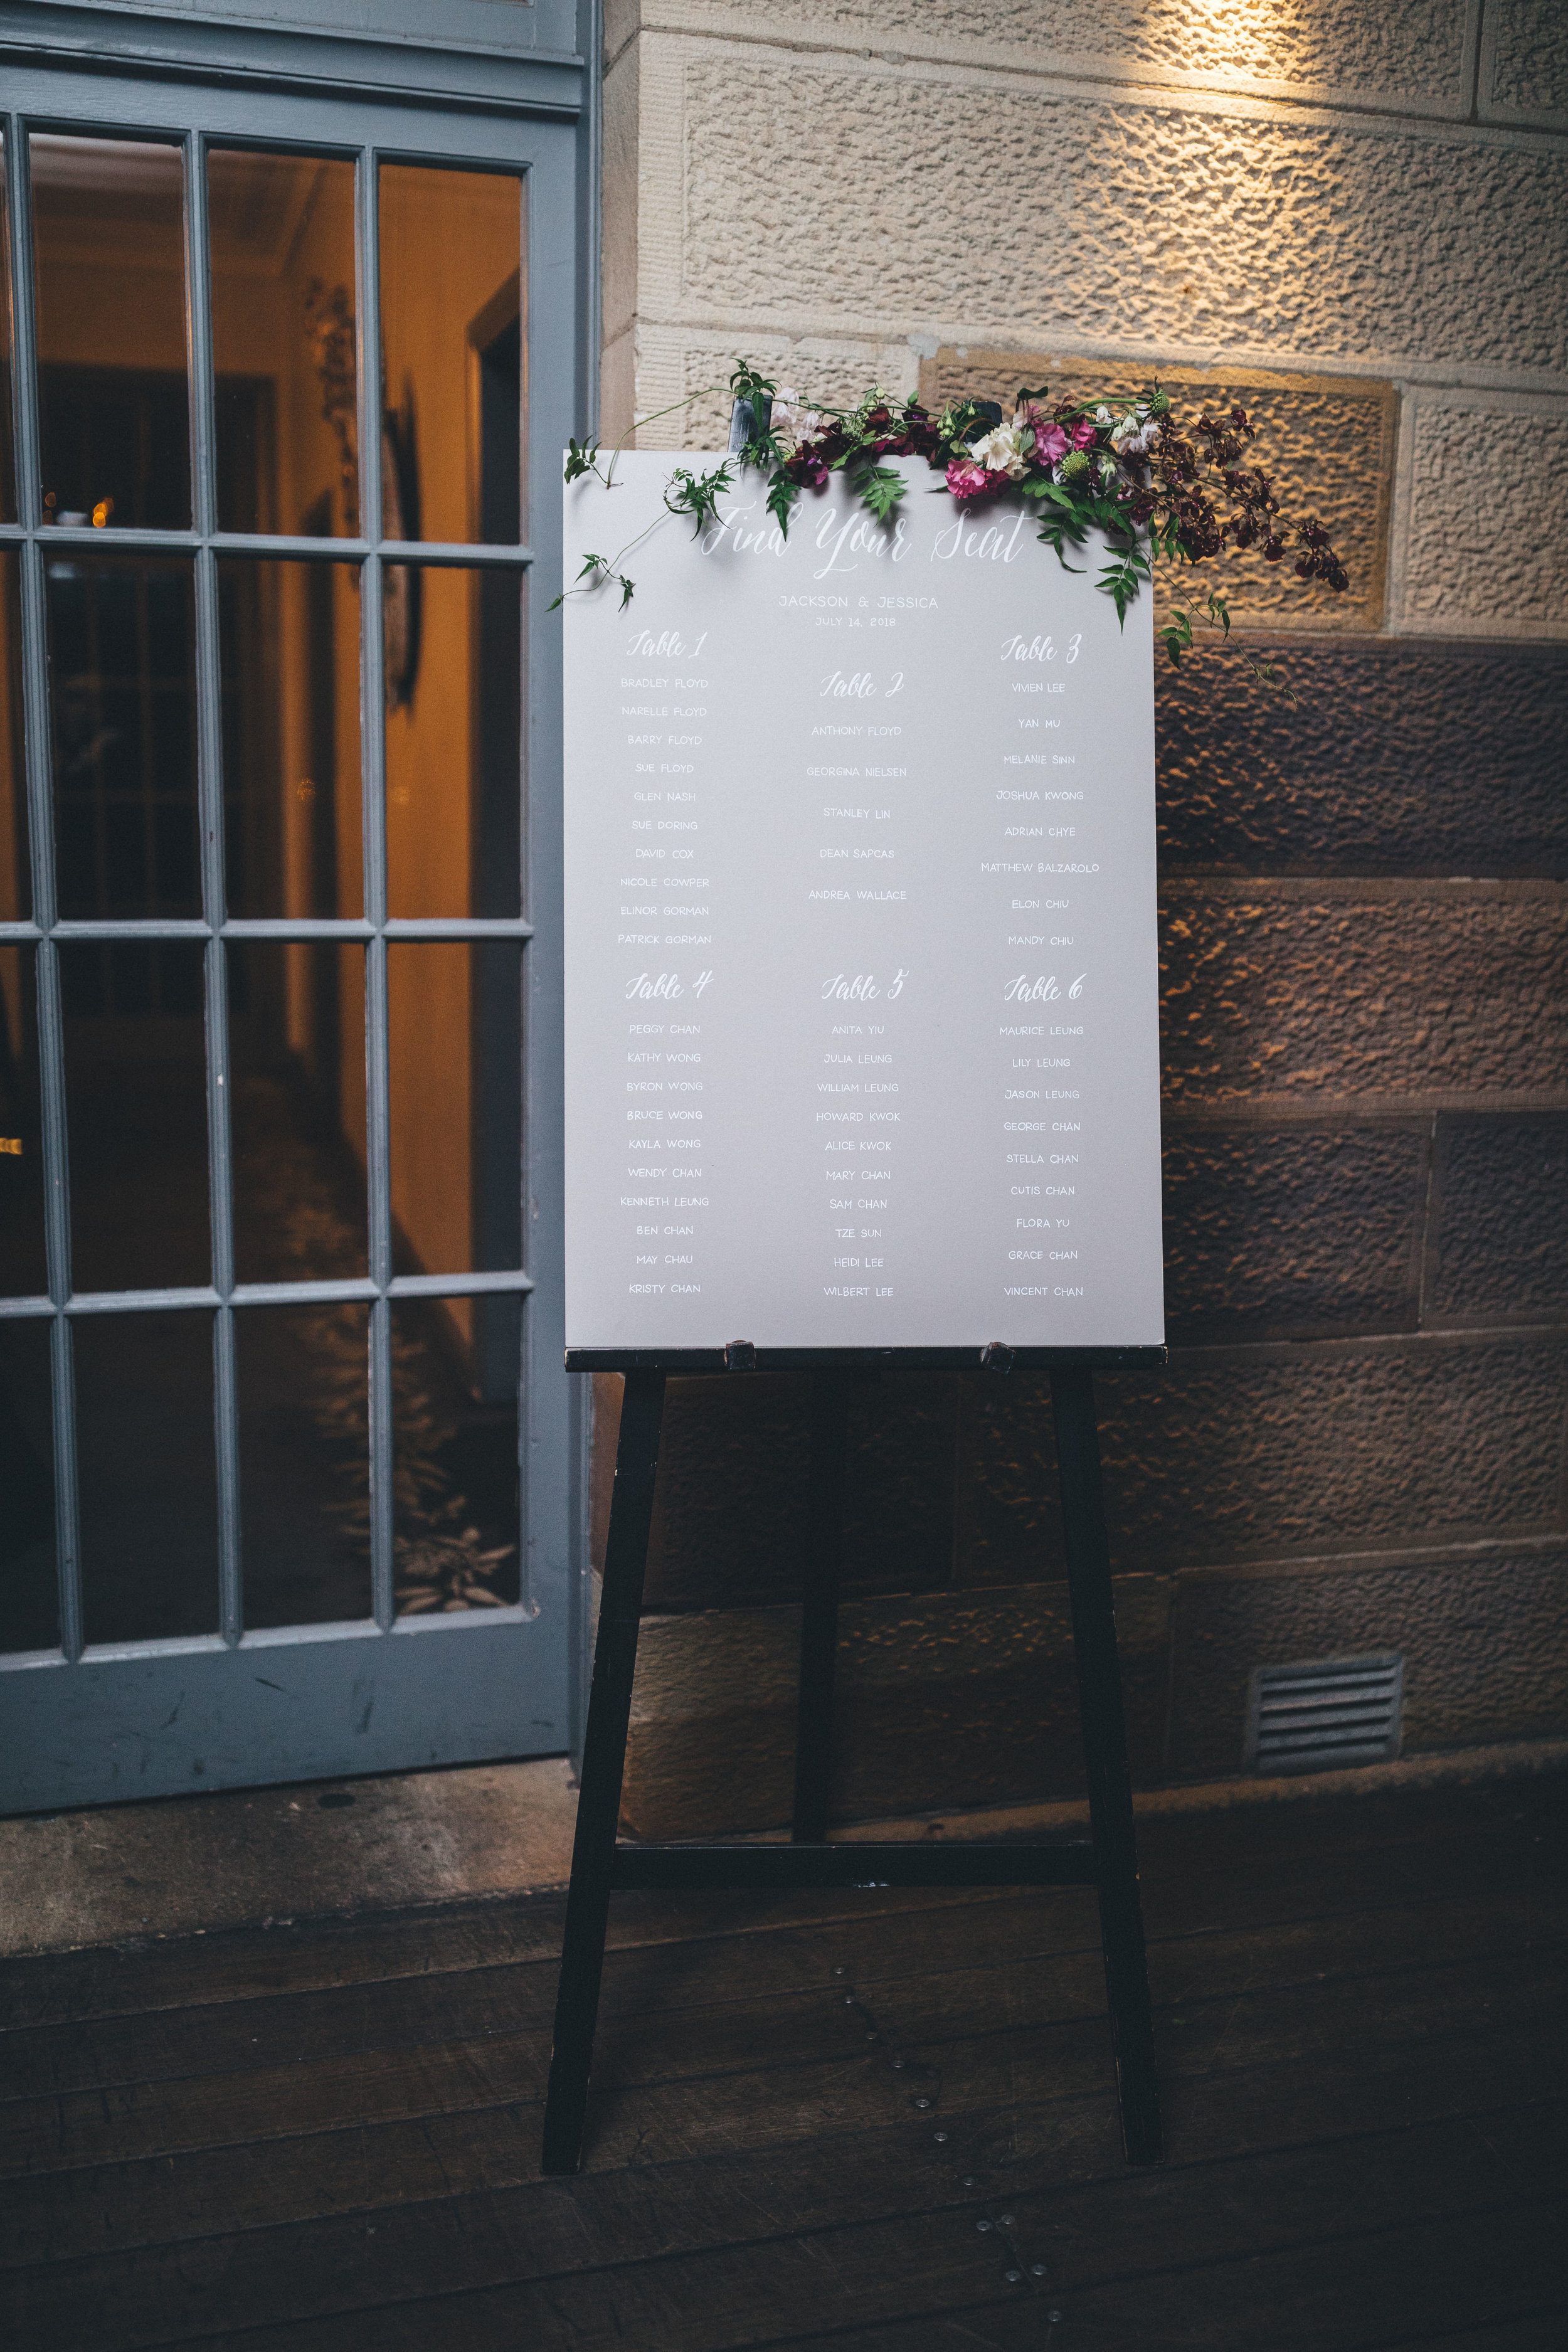 Seating chart - When guests arrive at your reception entrance, the seating chart is what will help guide them to their allocated seat. We usually have this custom made to match the welcome sign, and decorated with florals.